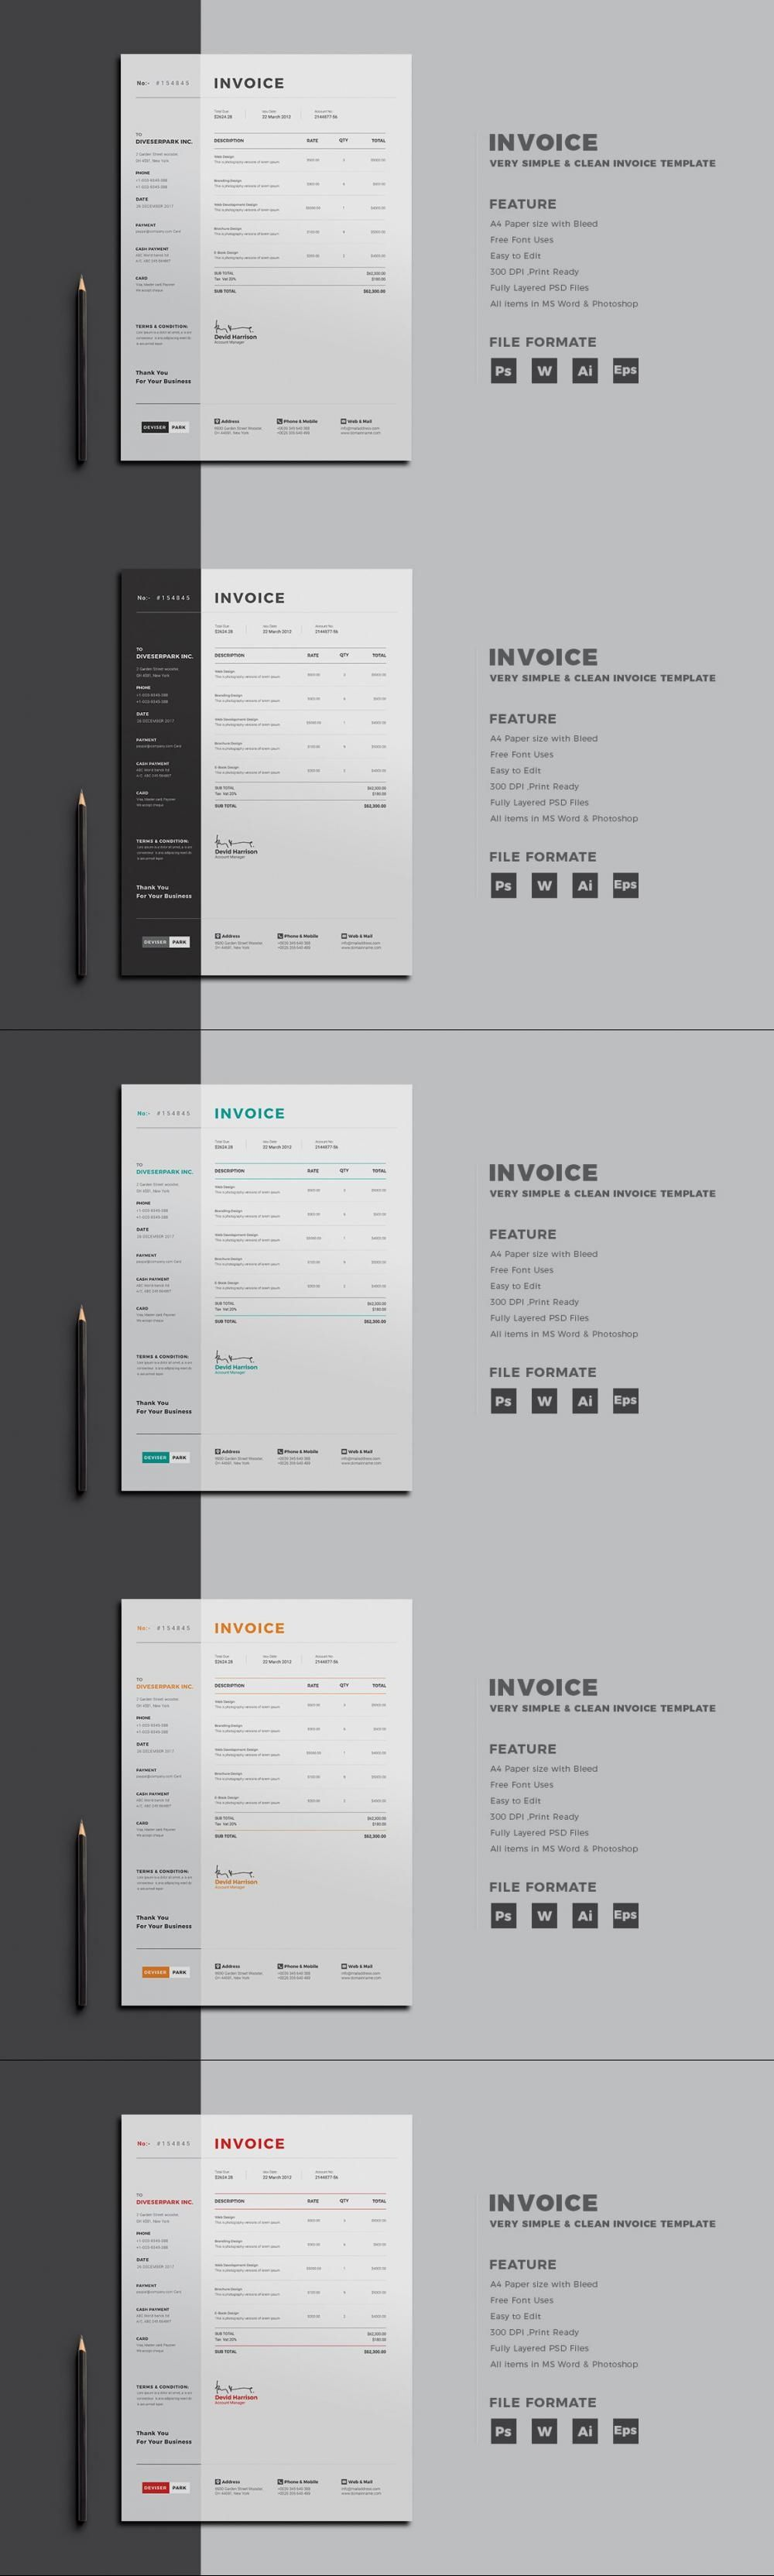 Invoice Corporate Invoicecalculator Stationerydesign Shopinvoice Invoicetemplate Clean Folder Stationery Templates Stationery Design Stationery Printing